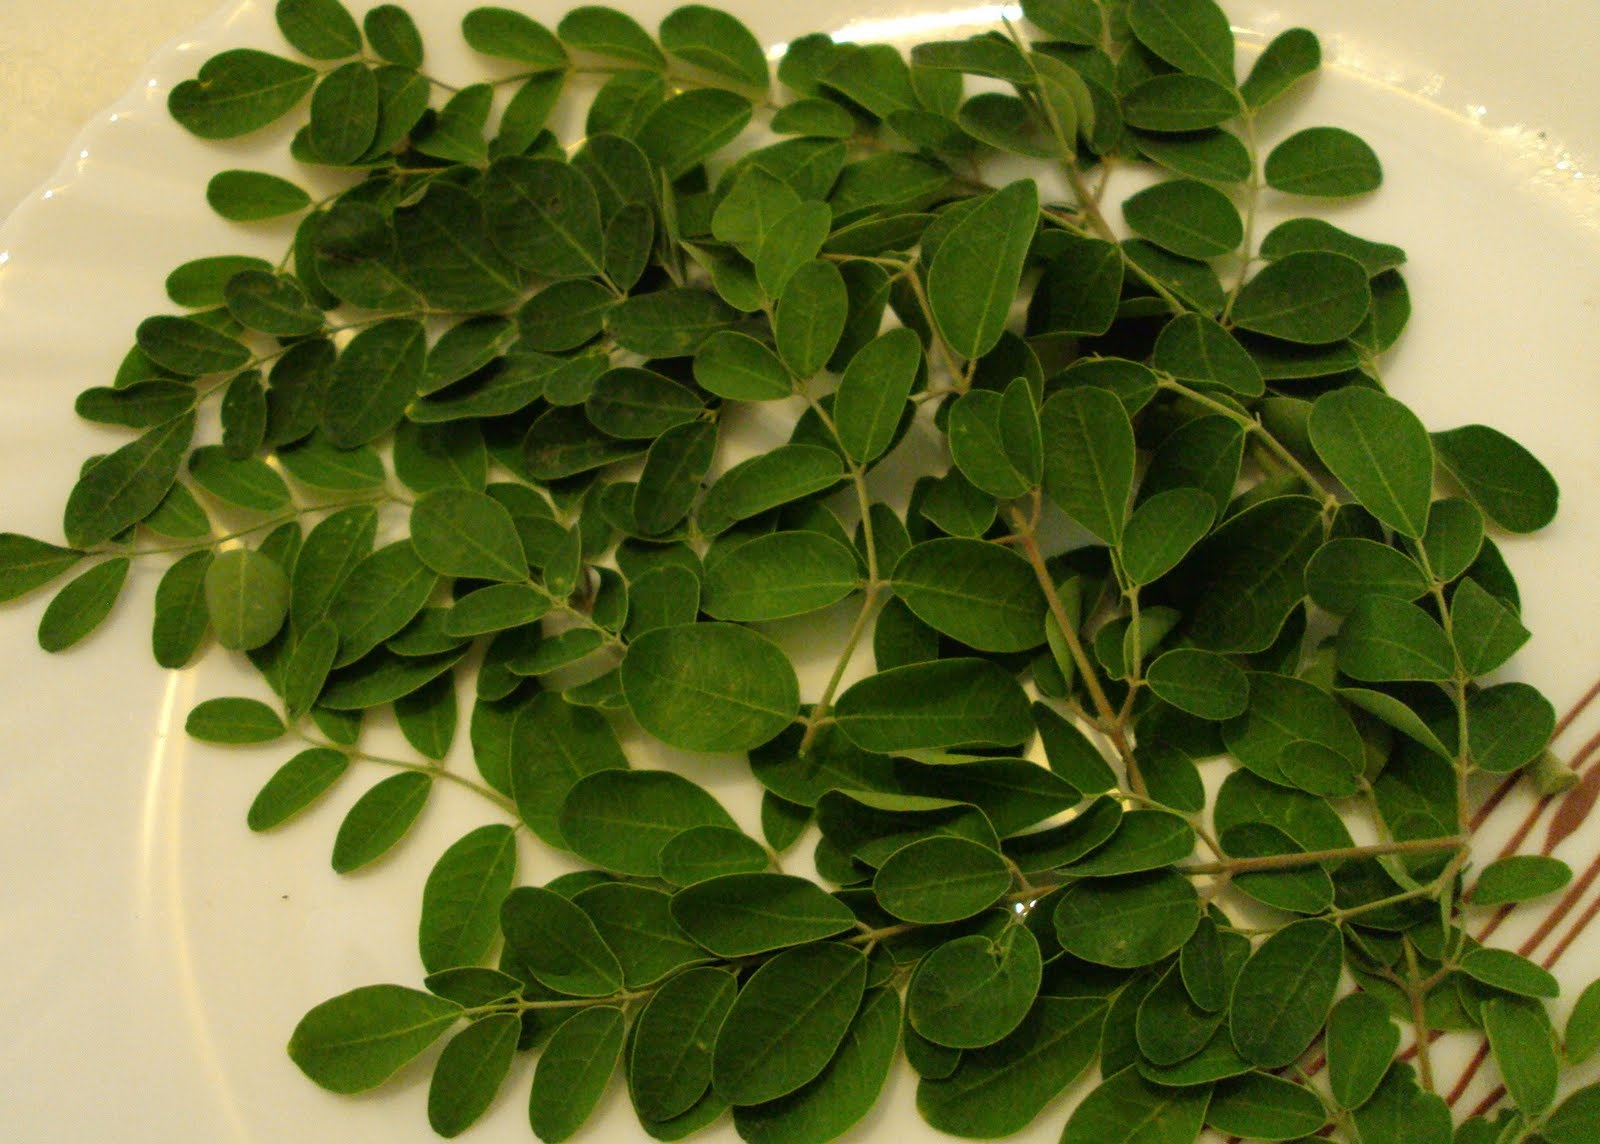 Chipilin Leaves http://zoom50.wordpress.com/2010/04/28/arbol-de-marangothe-moringa-tree-moringa-oleifera/